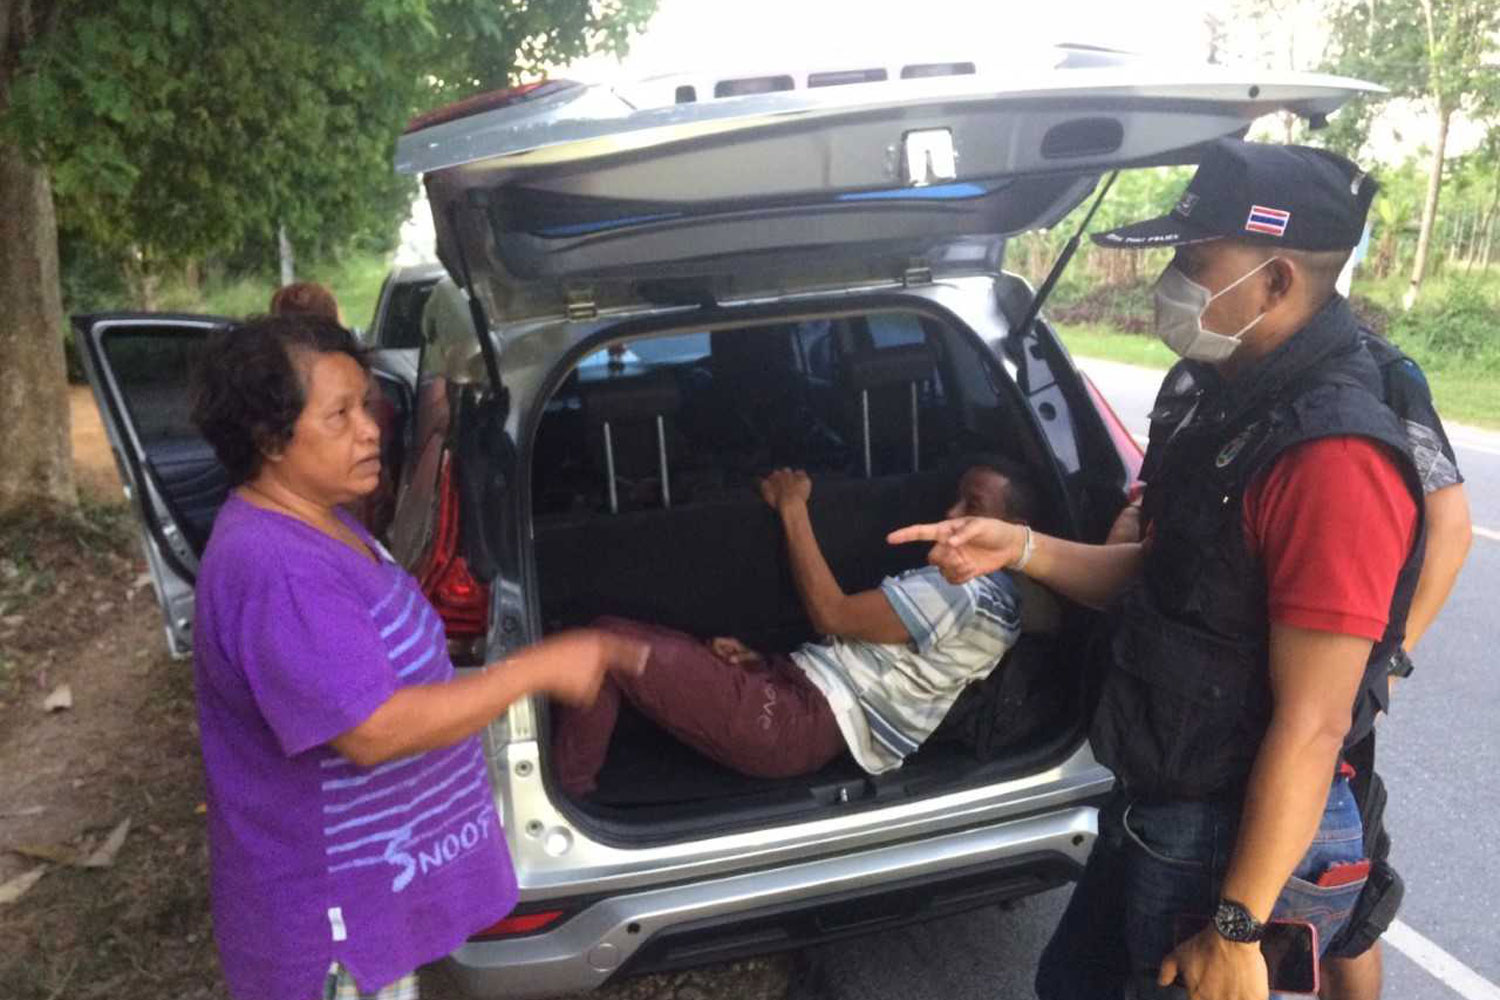 Police question a Thai suspect when they stop her vehicle carrying illegal migrants in Rattanaphum district of Songkhla province on Monday. (Photo by Assawin Pakkawan)